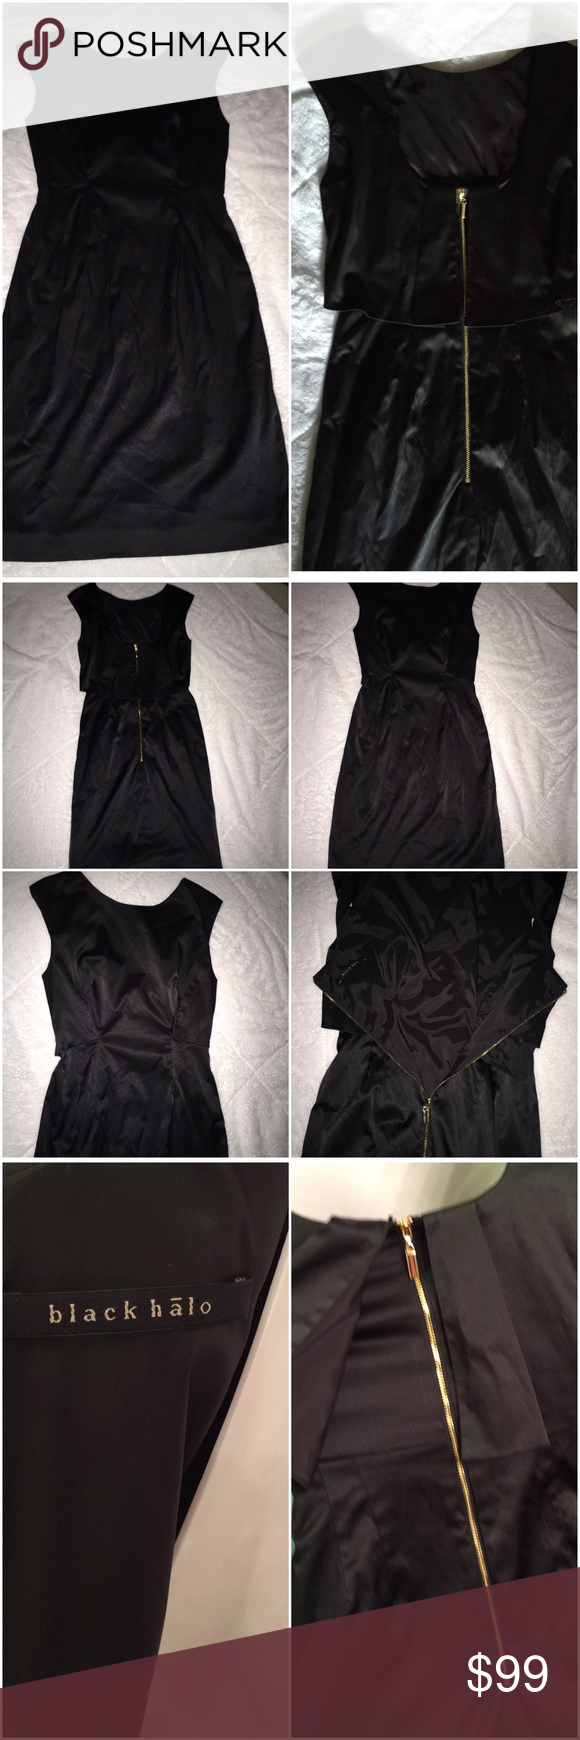 black halo extremely sexy & elegant Sz 2 Timeless little black dress. Simple & yet makes a statement all by its self. Black Halo Dresses Midi